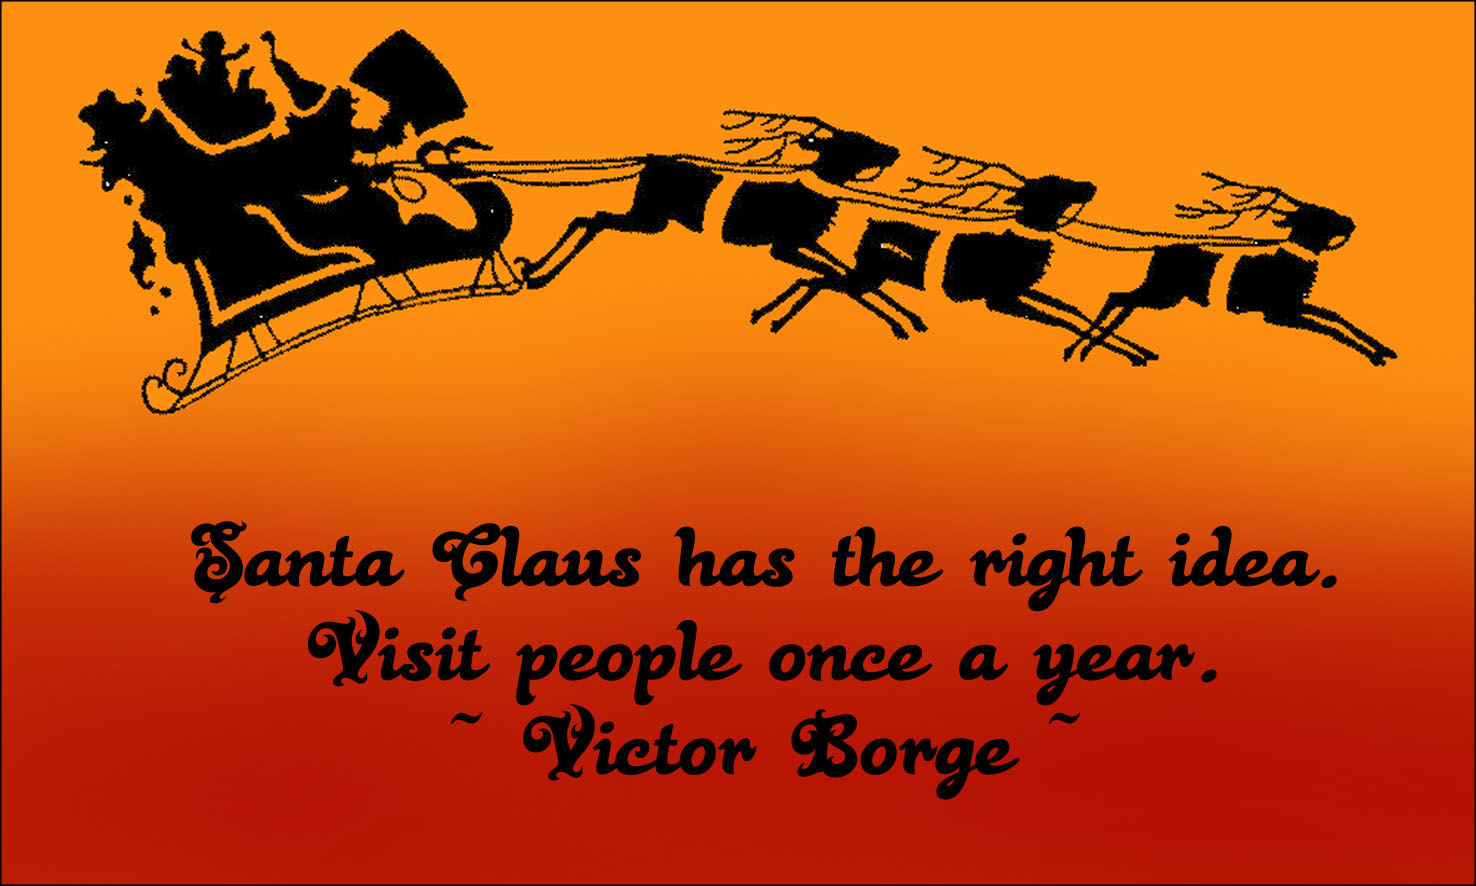 Santa's sleigh and reindeers in silhouette with funny Victor Borge quote.